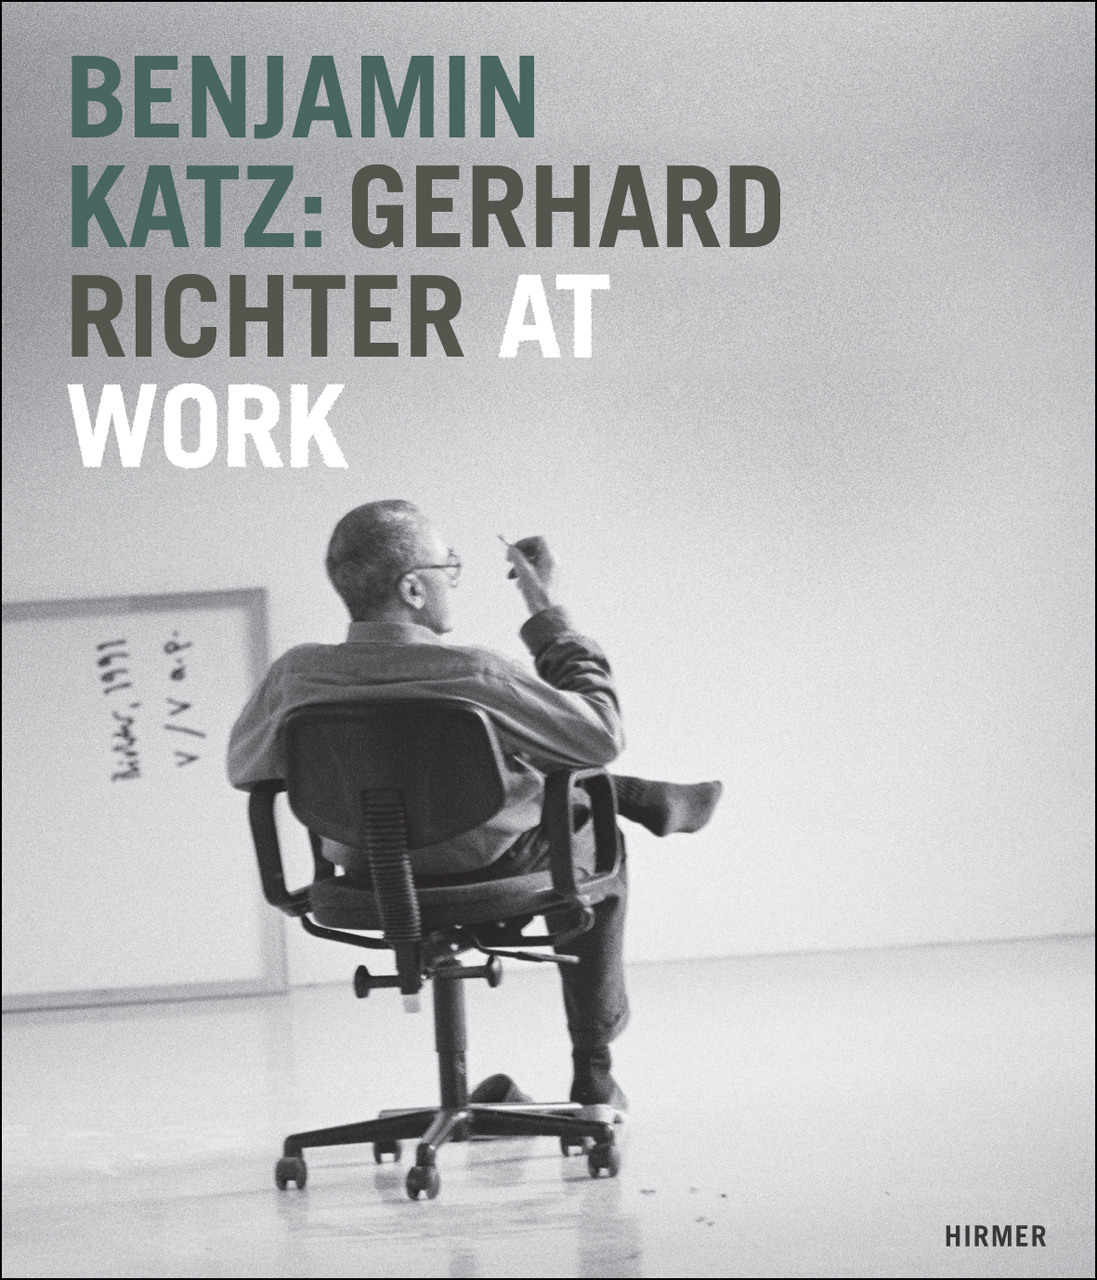 Benjamin Katz: Gerhard Richter at Work